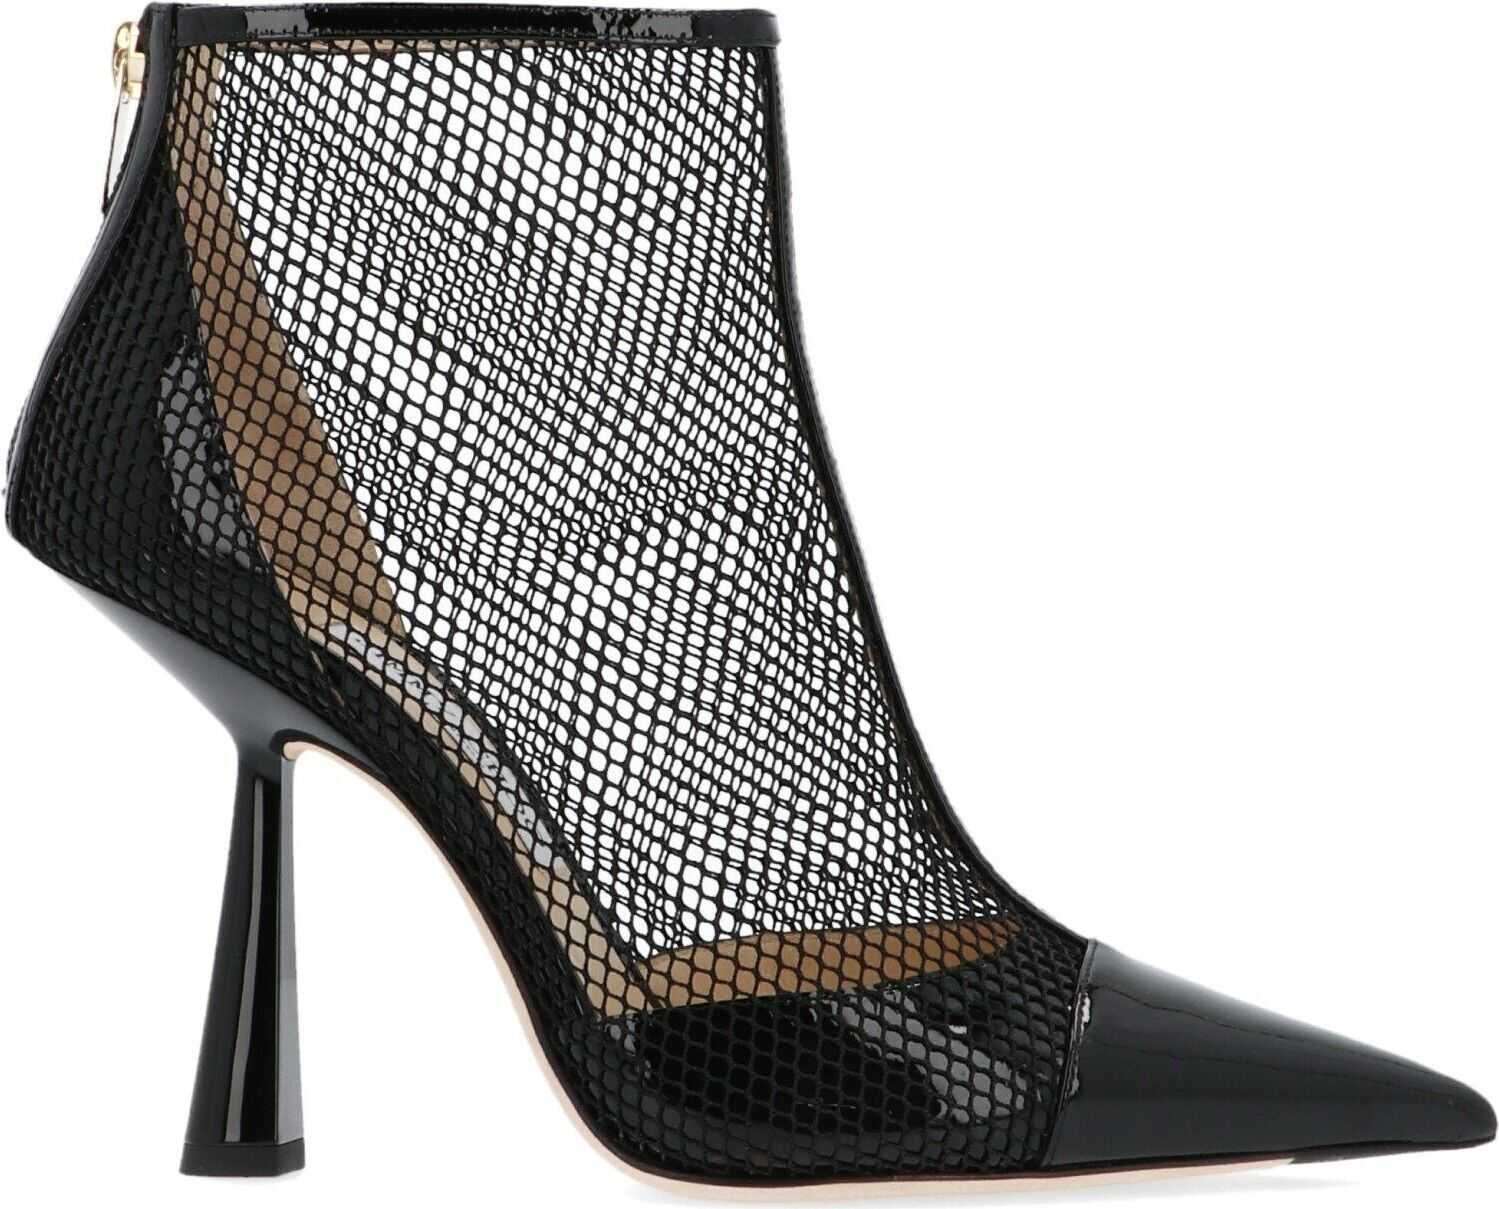 Jimmy Choo Leather Ankle Boots BLACK